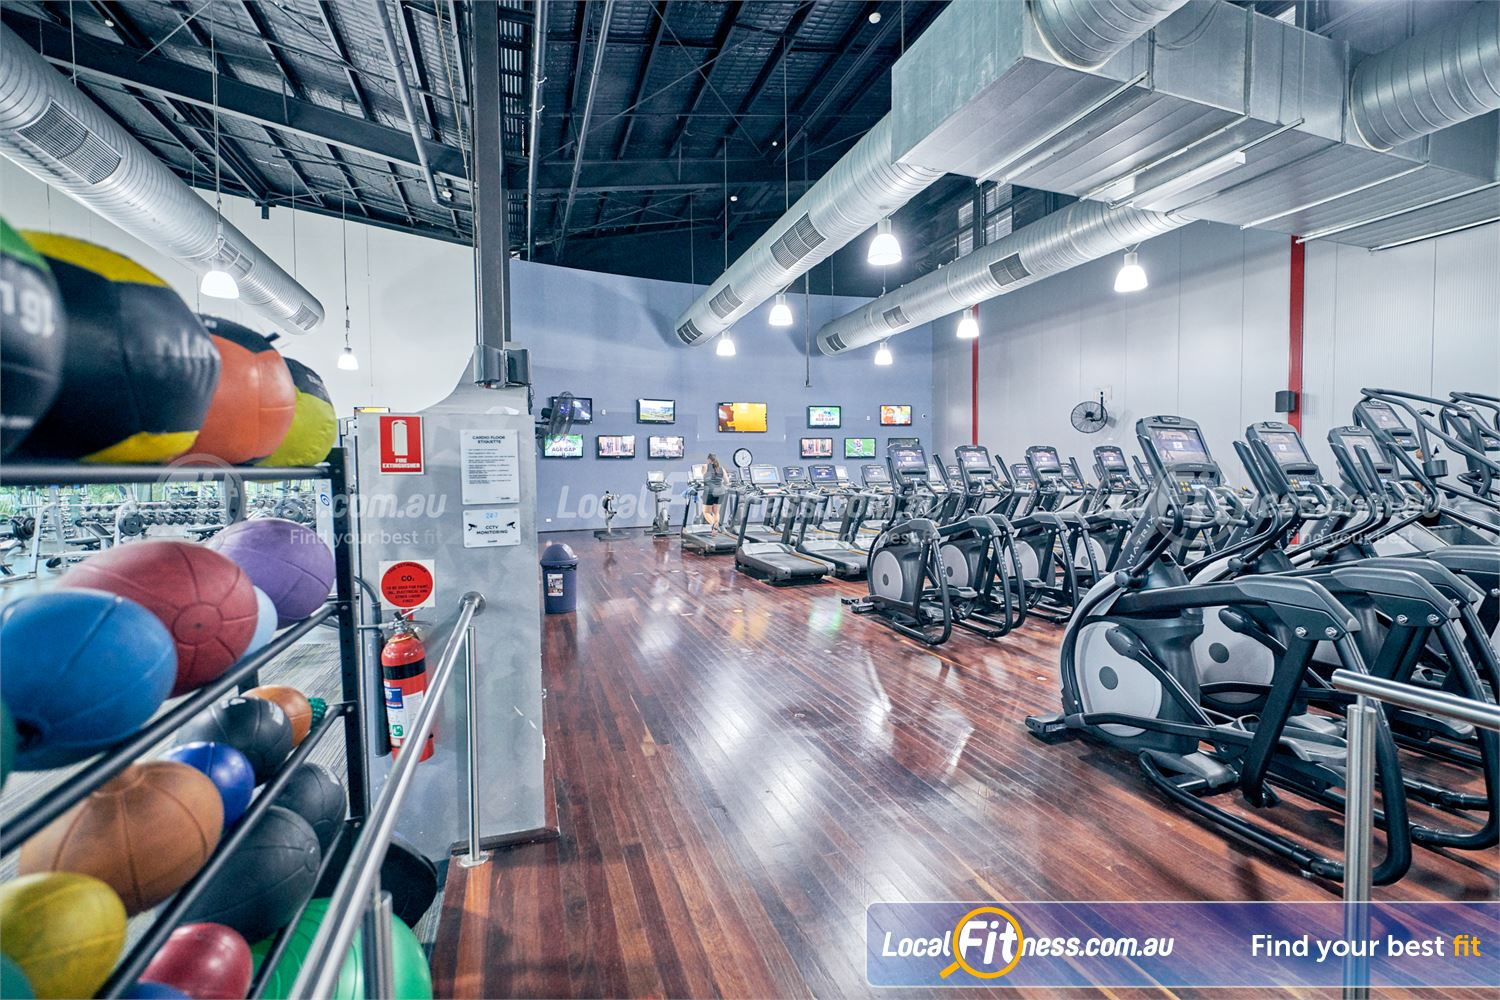 Goodlife Health Clubs Karingal Our 24 hour Karingal gym includes a state of the art cardio area.